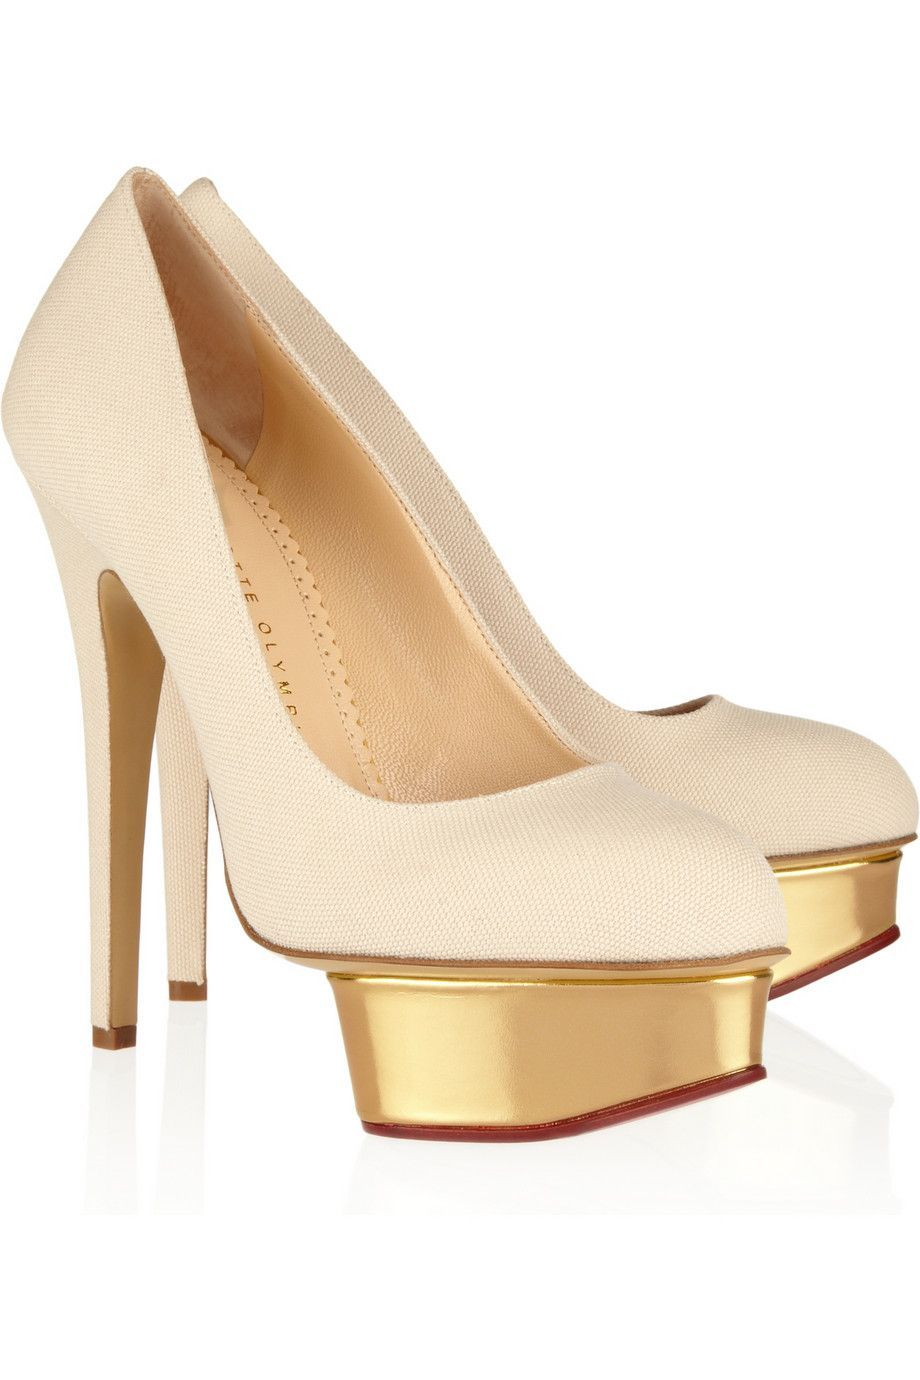 perfect cheap low shipping fee Charlotte Olympia Platform Canvas Pumps Manchester for sale zubYS